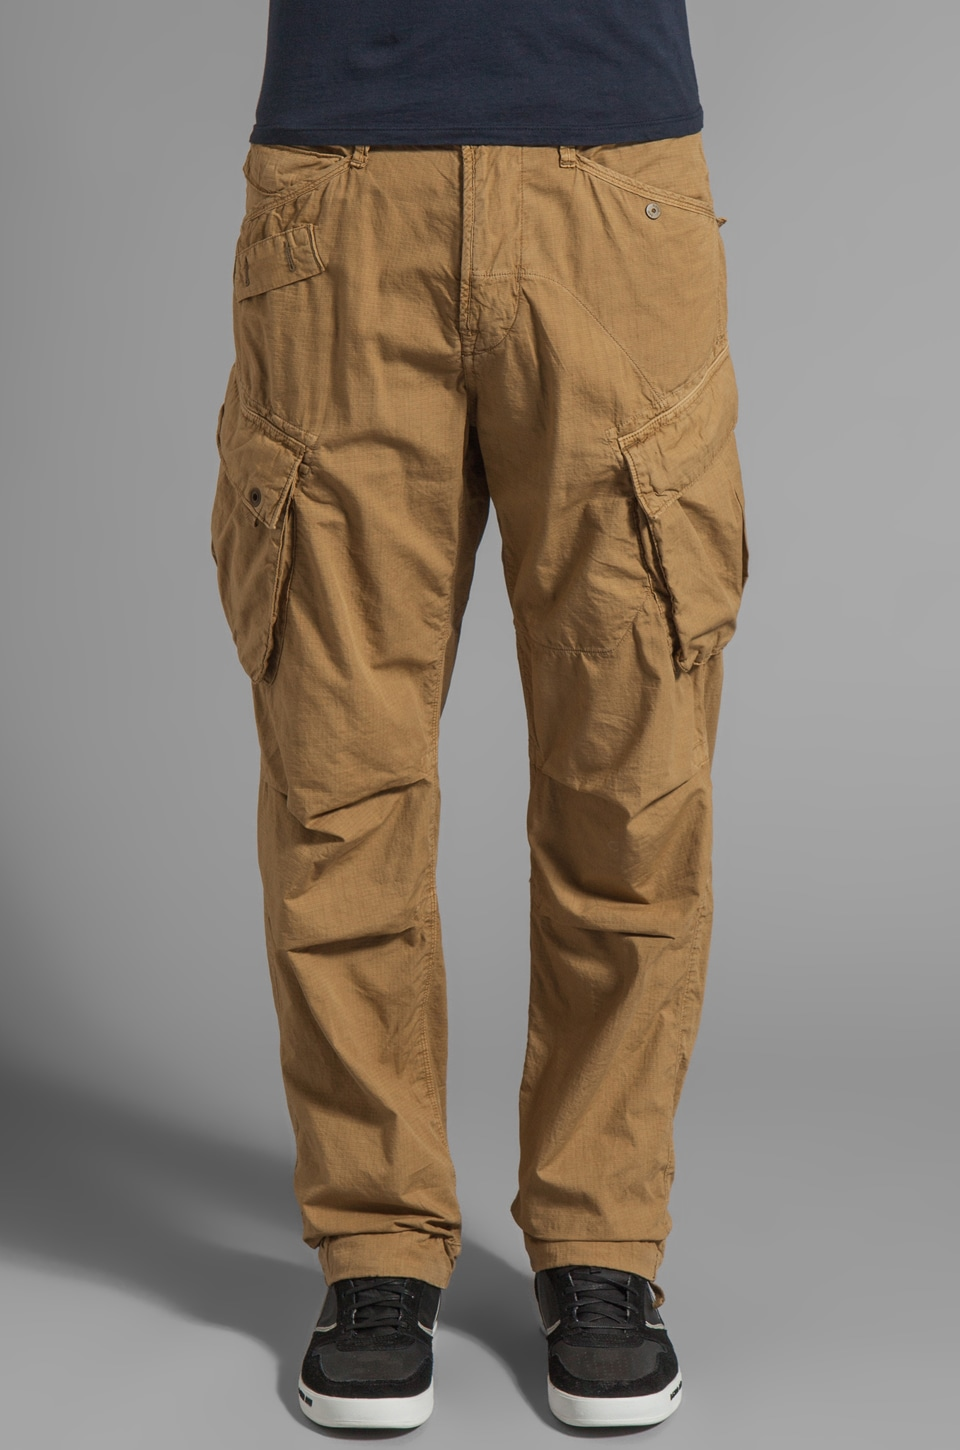 G-Star Rovic Loose Pant in Dark Fall